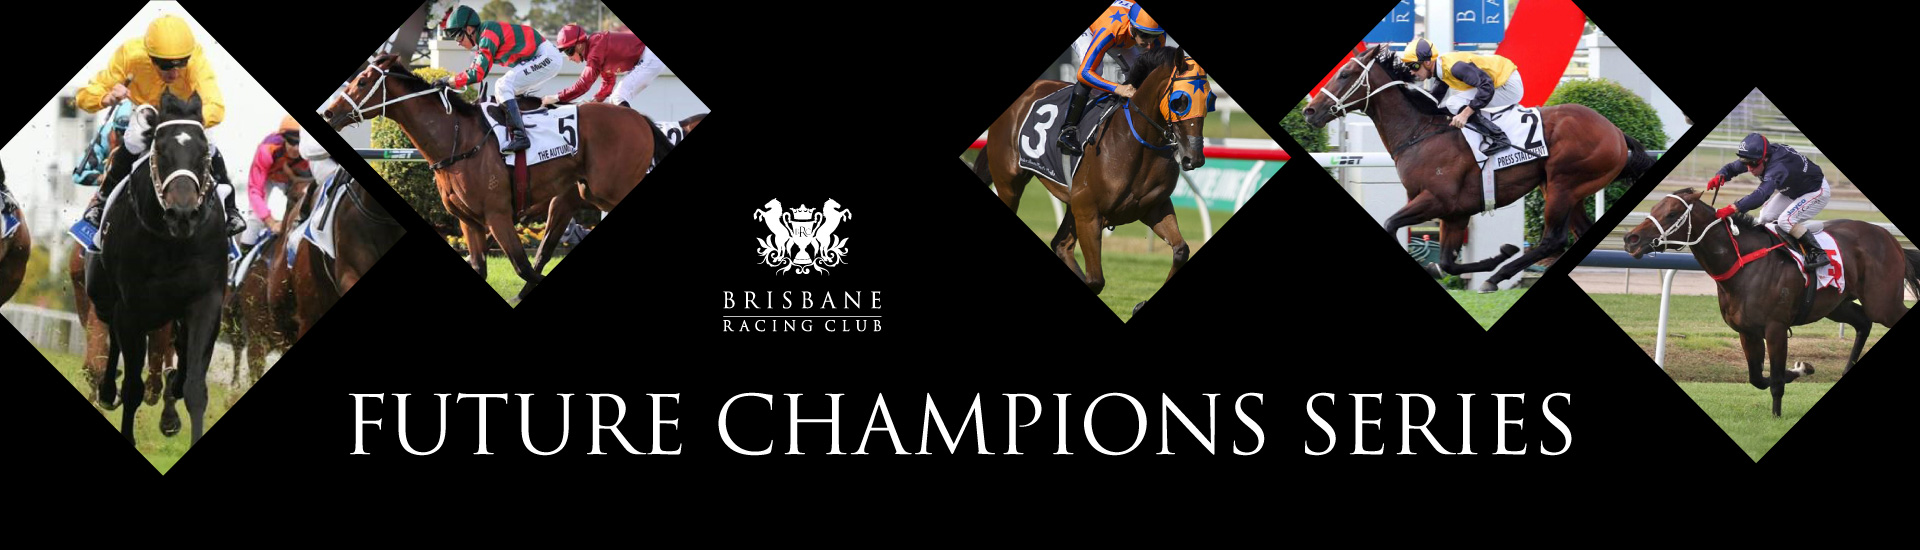 Future Champion Series | Brisbane Racing Club